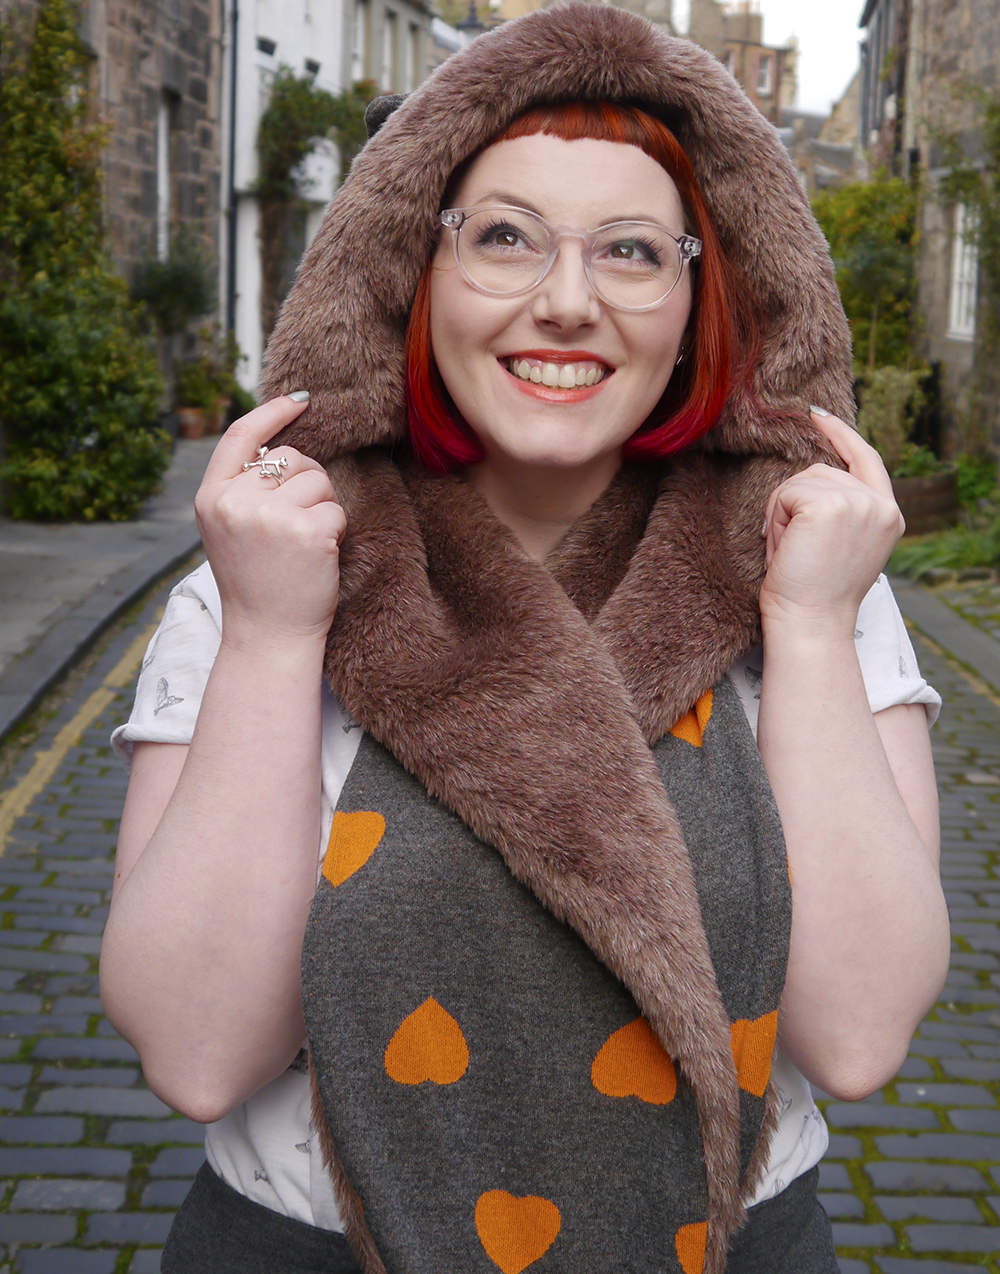 Styled by Helen, Scottish blogger, Scottish fashion blogger, red head, Chouchou, Chouchou Couture, fashion hood, hood scarf, kitty hood, kitty ears, faux fur, love heart print, pops of orange, bonnie bling, ginger, giner necklace, casual day look, casual everyday style, Edinburgh, Stockbridge Edinburgh, Edinburgh blogger, independent designer, #HOODGIRL